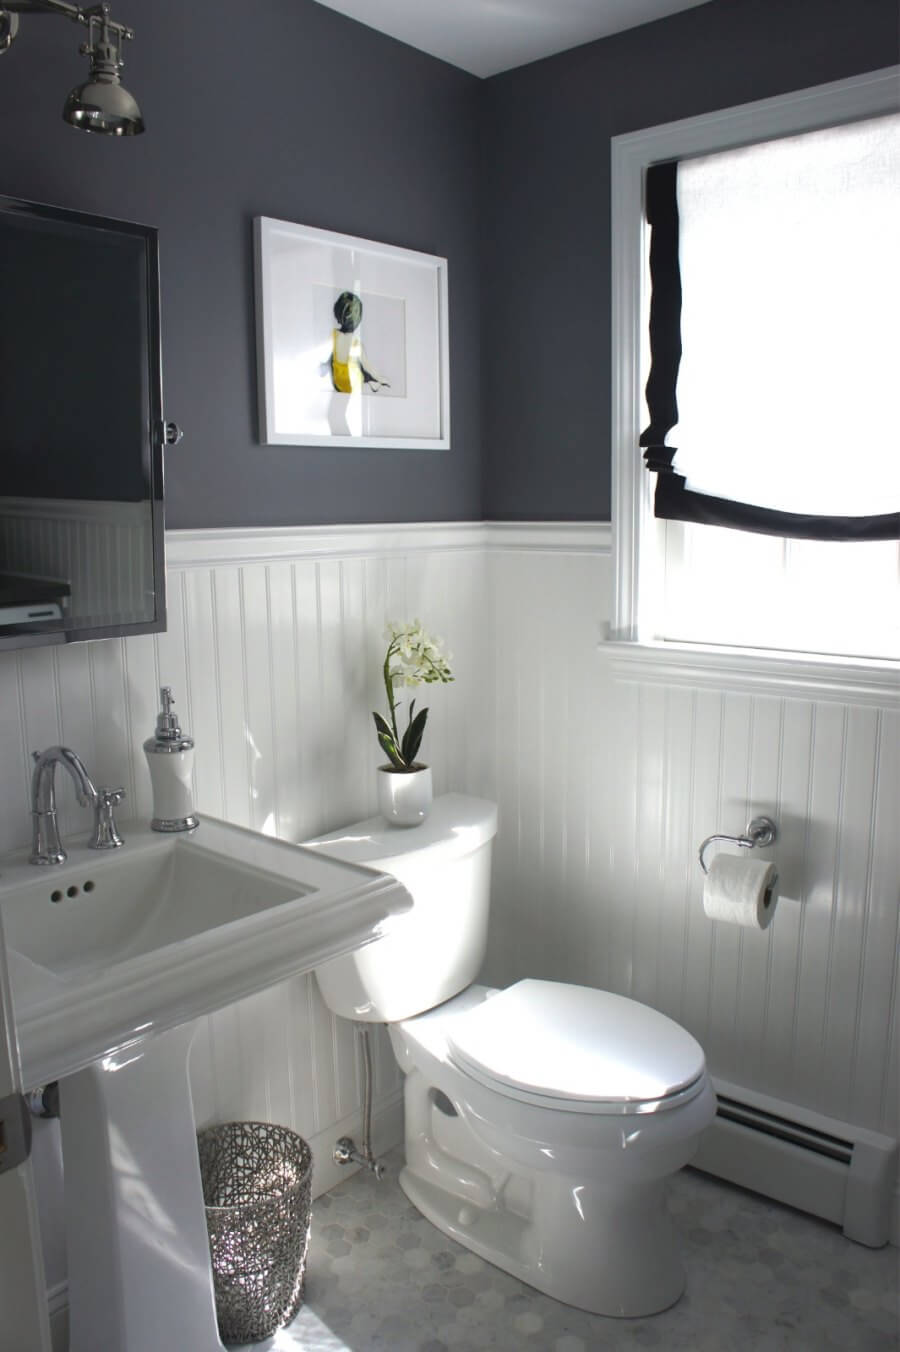 Beadboard paneling in a grey bathroom | Bathroom Wainscoting: Beadboard Panels in the Bathroom Design | FarmFoodFamily.com